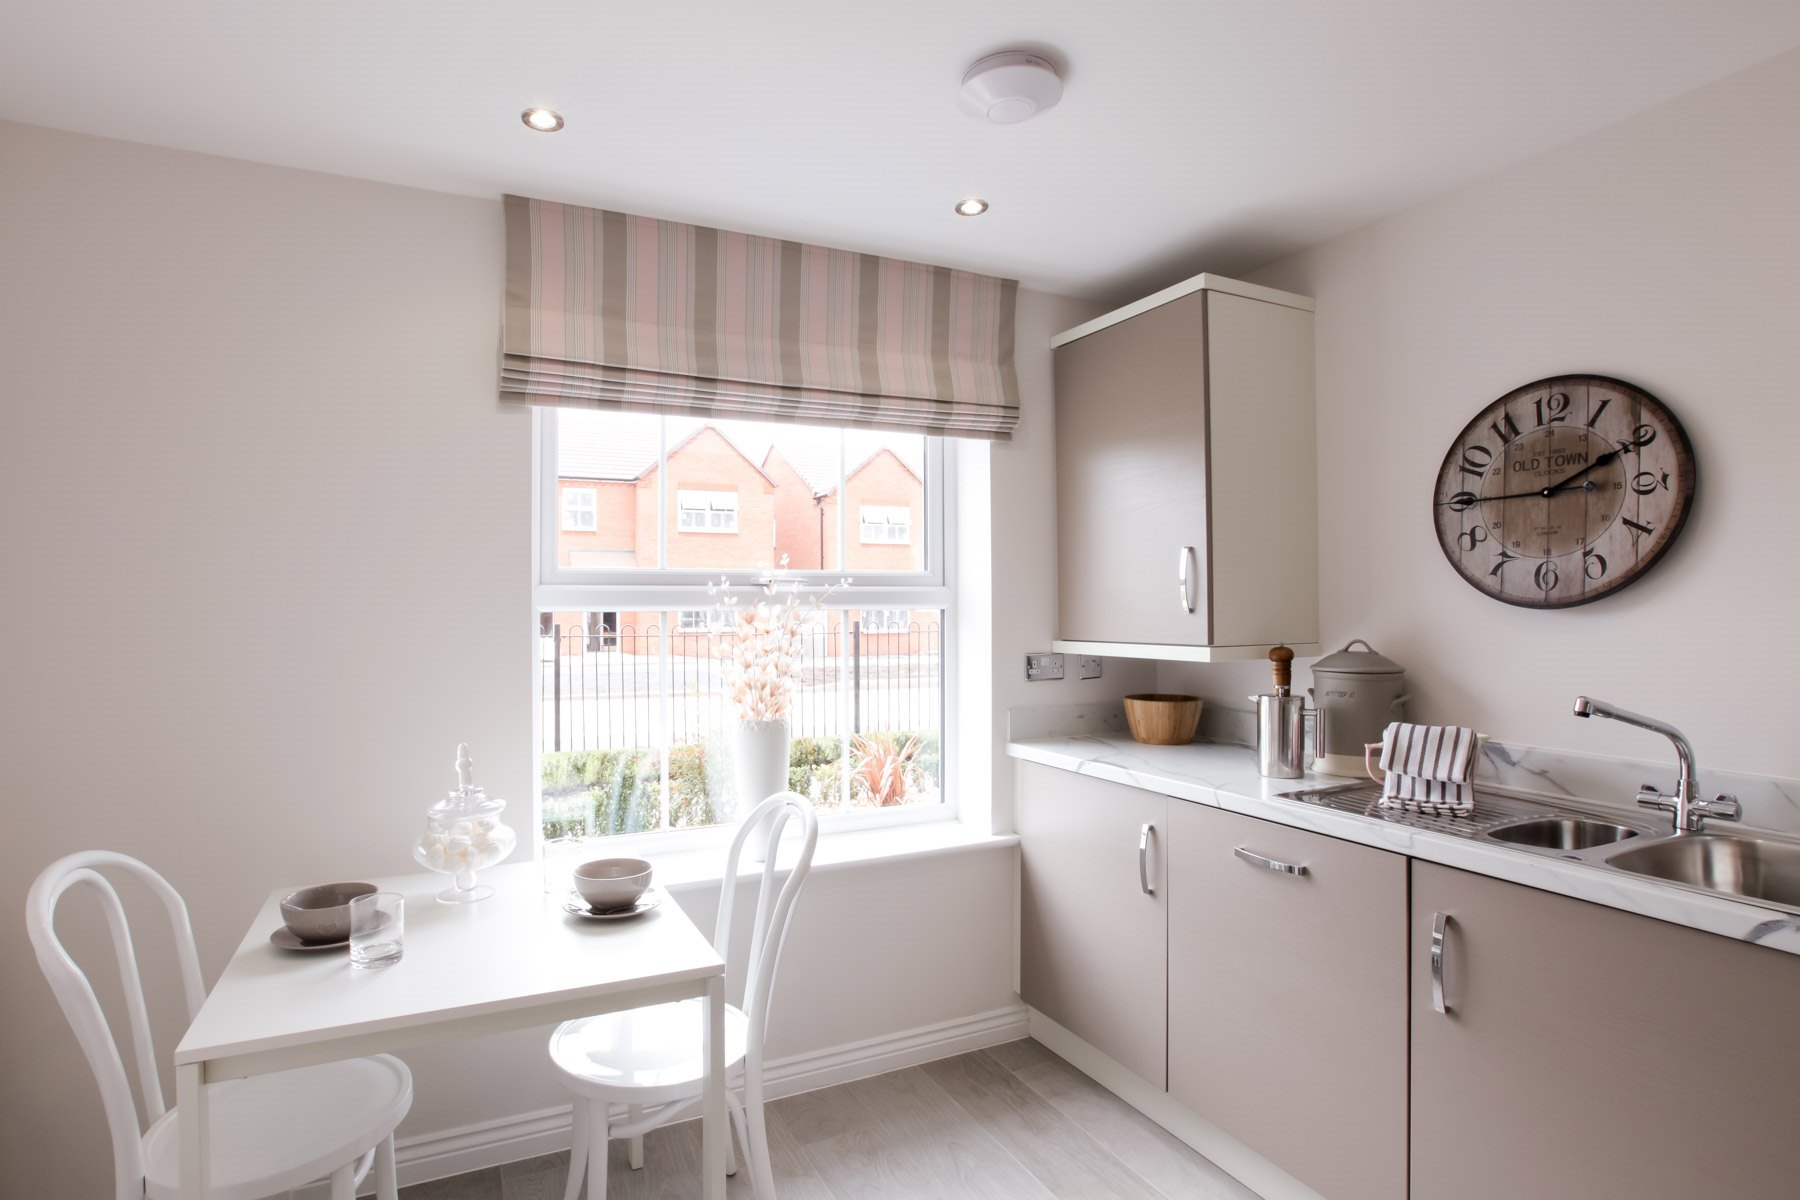 TW_Flatford_Kitchen_Diner